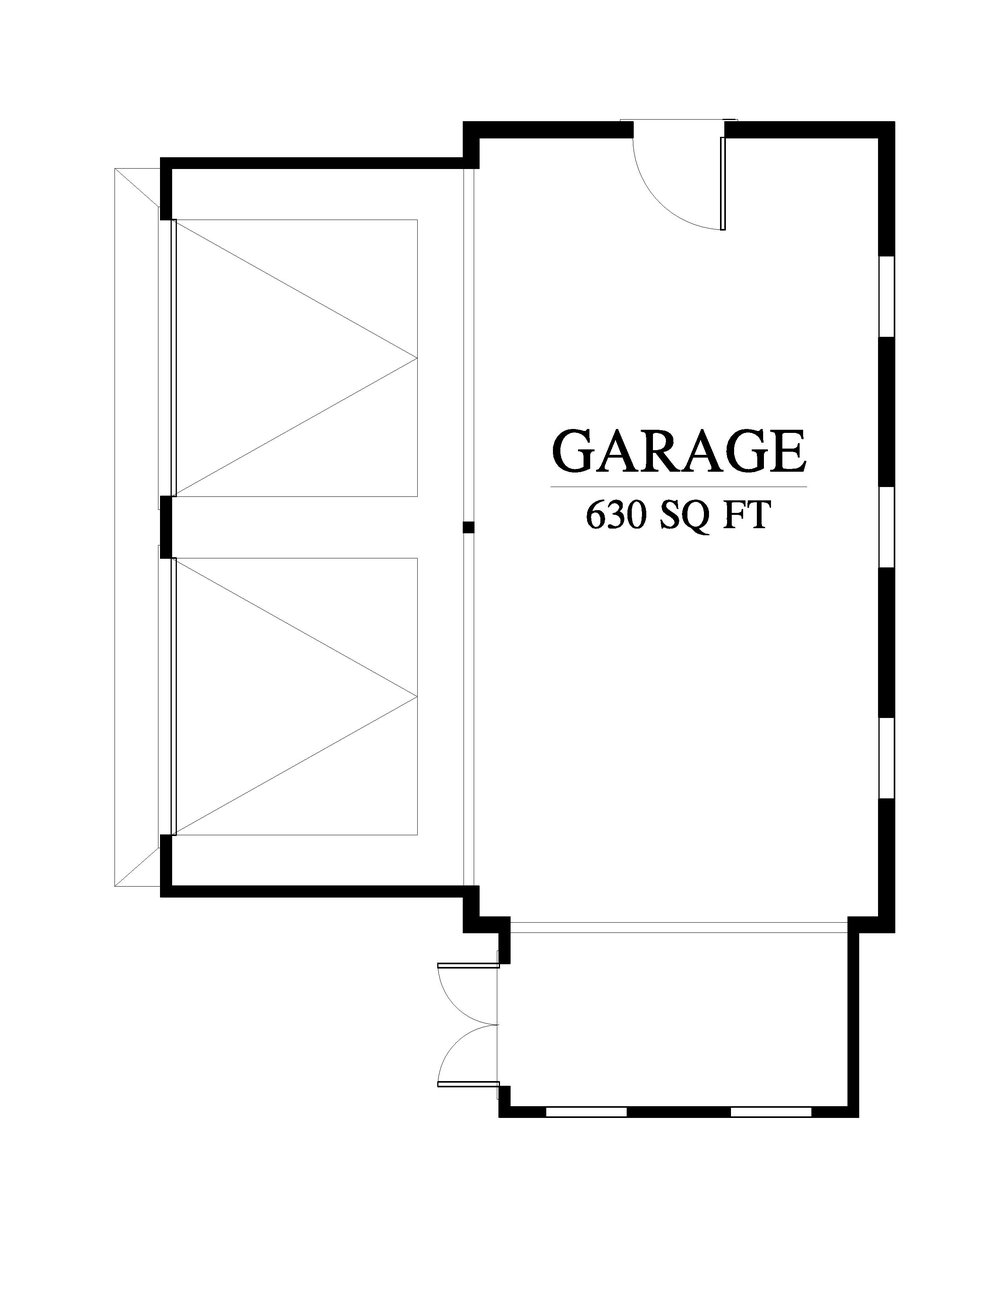 Eden garage floorplan-page-001.jpg